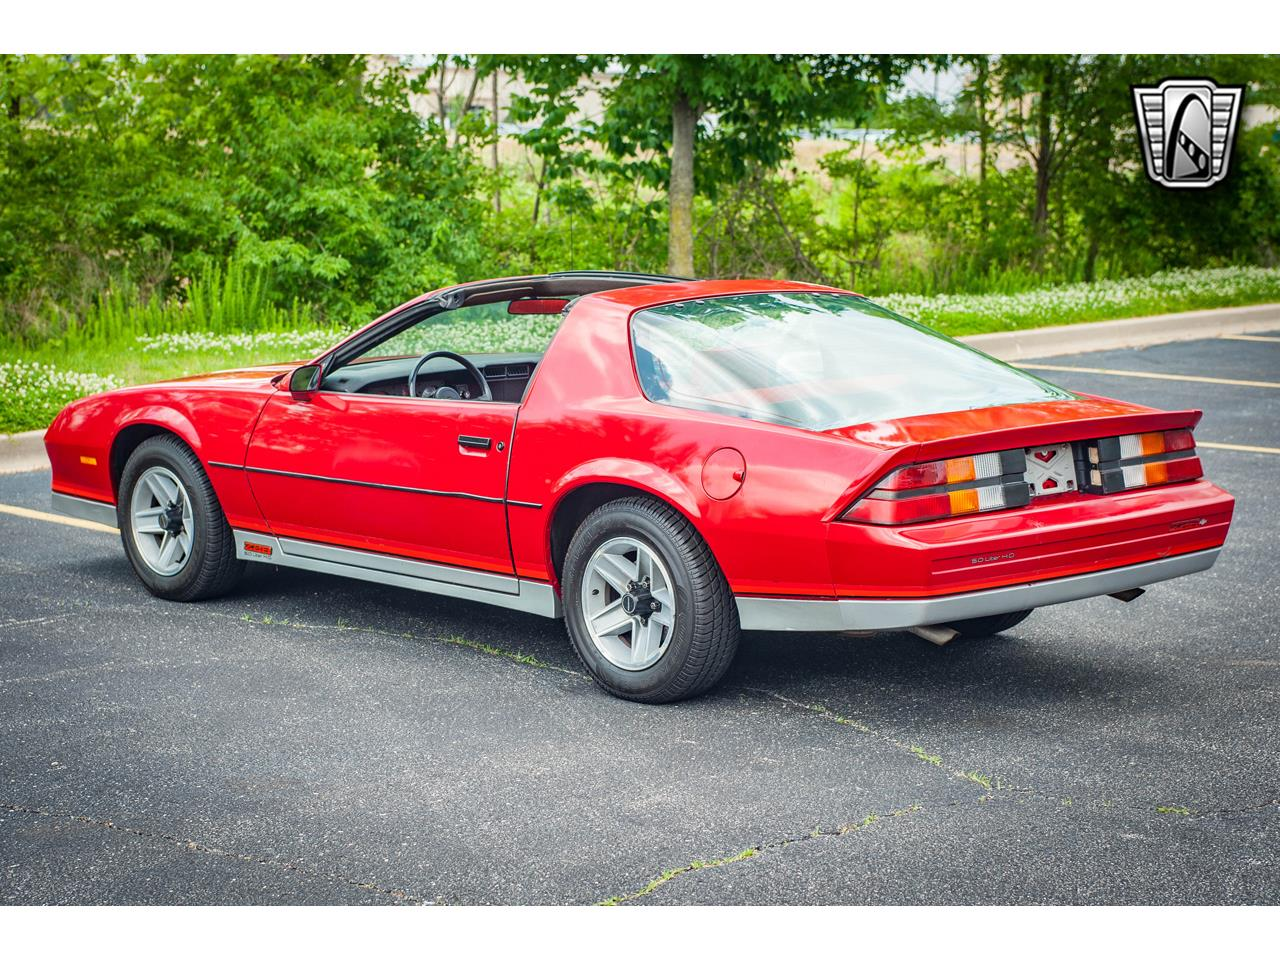 Large Picture of '84 Chevrolet Camaro located in O'Fallon Illinois - $9,500.00 Offered by Gateway Classic Cars - St. Louis - QB9Y